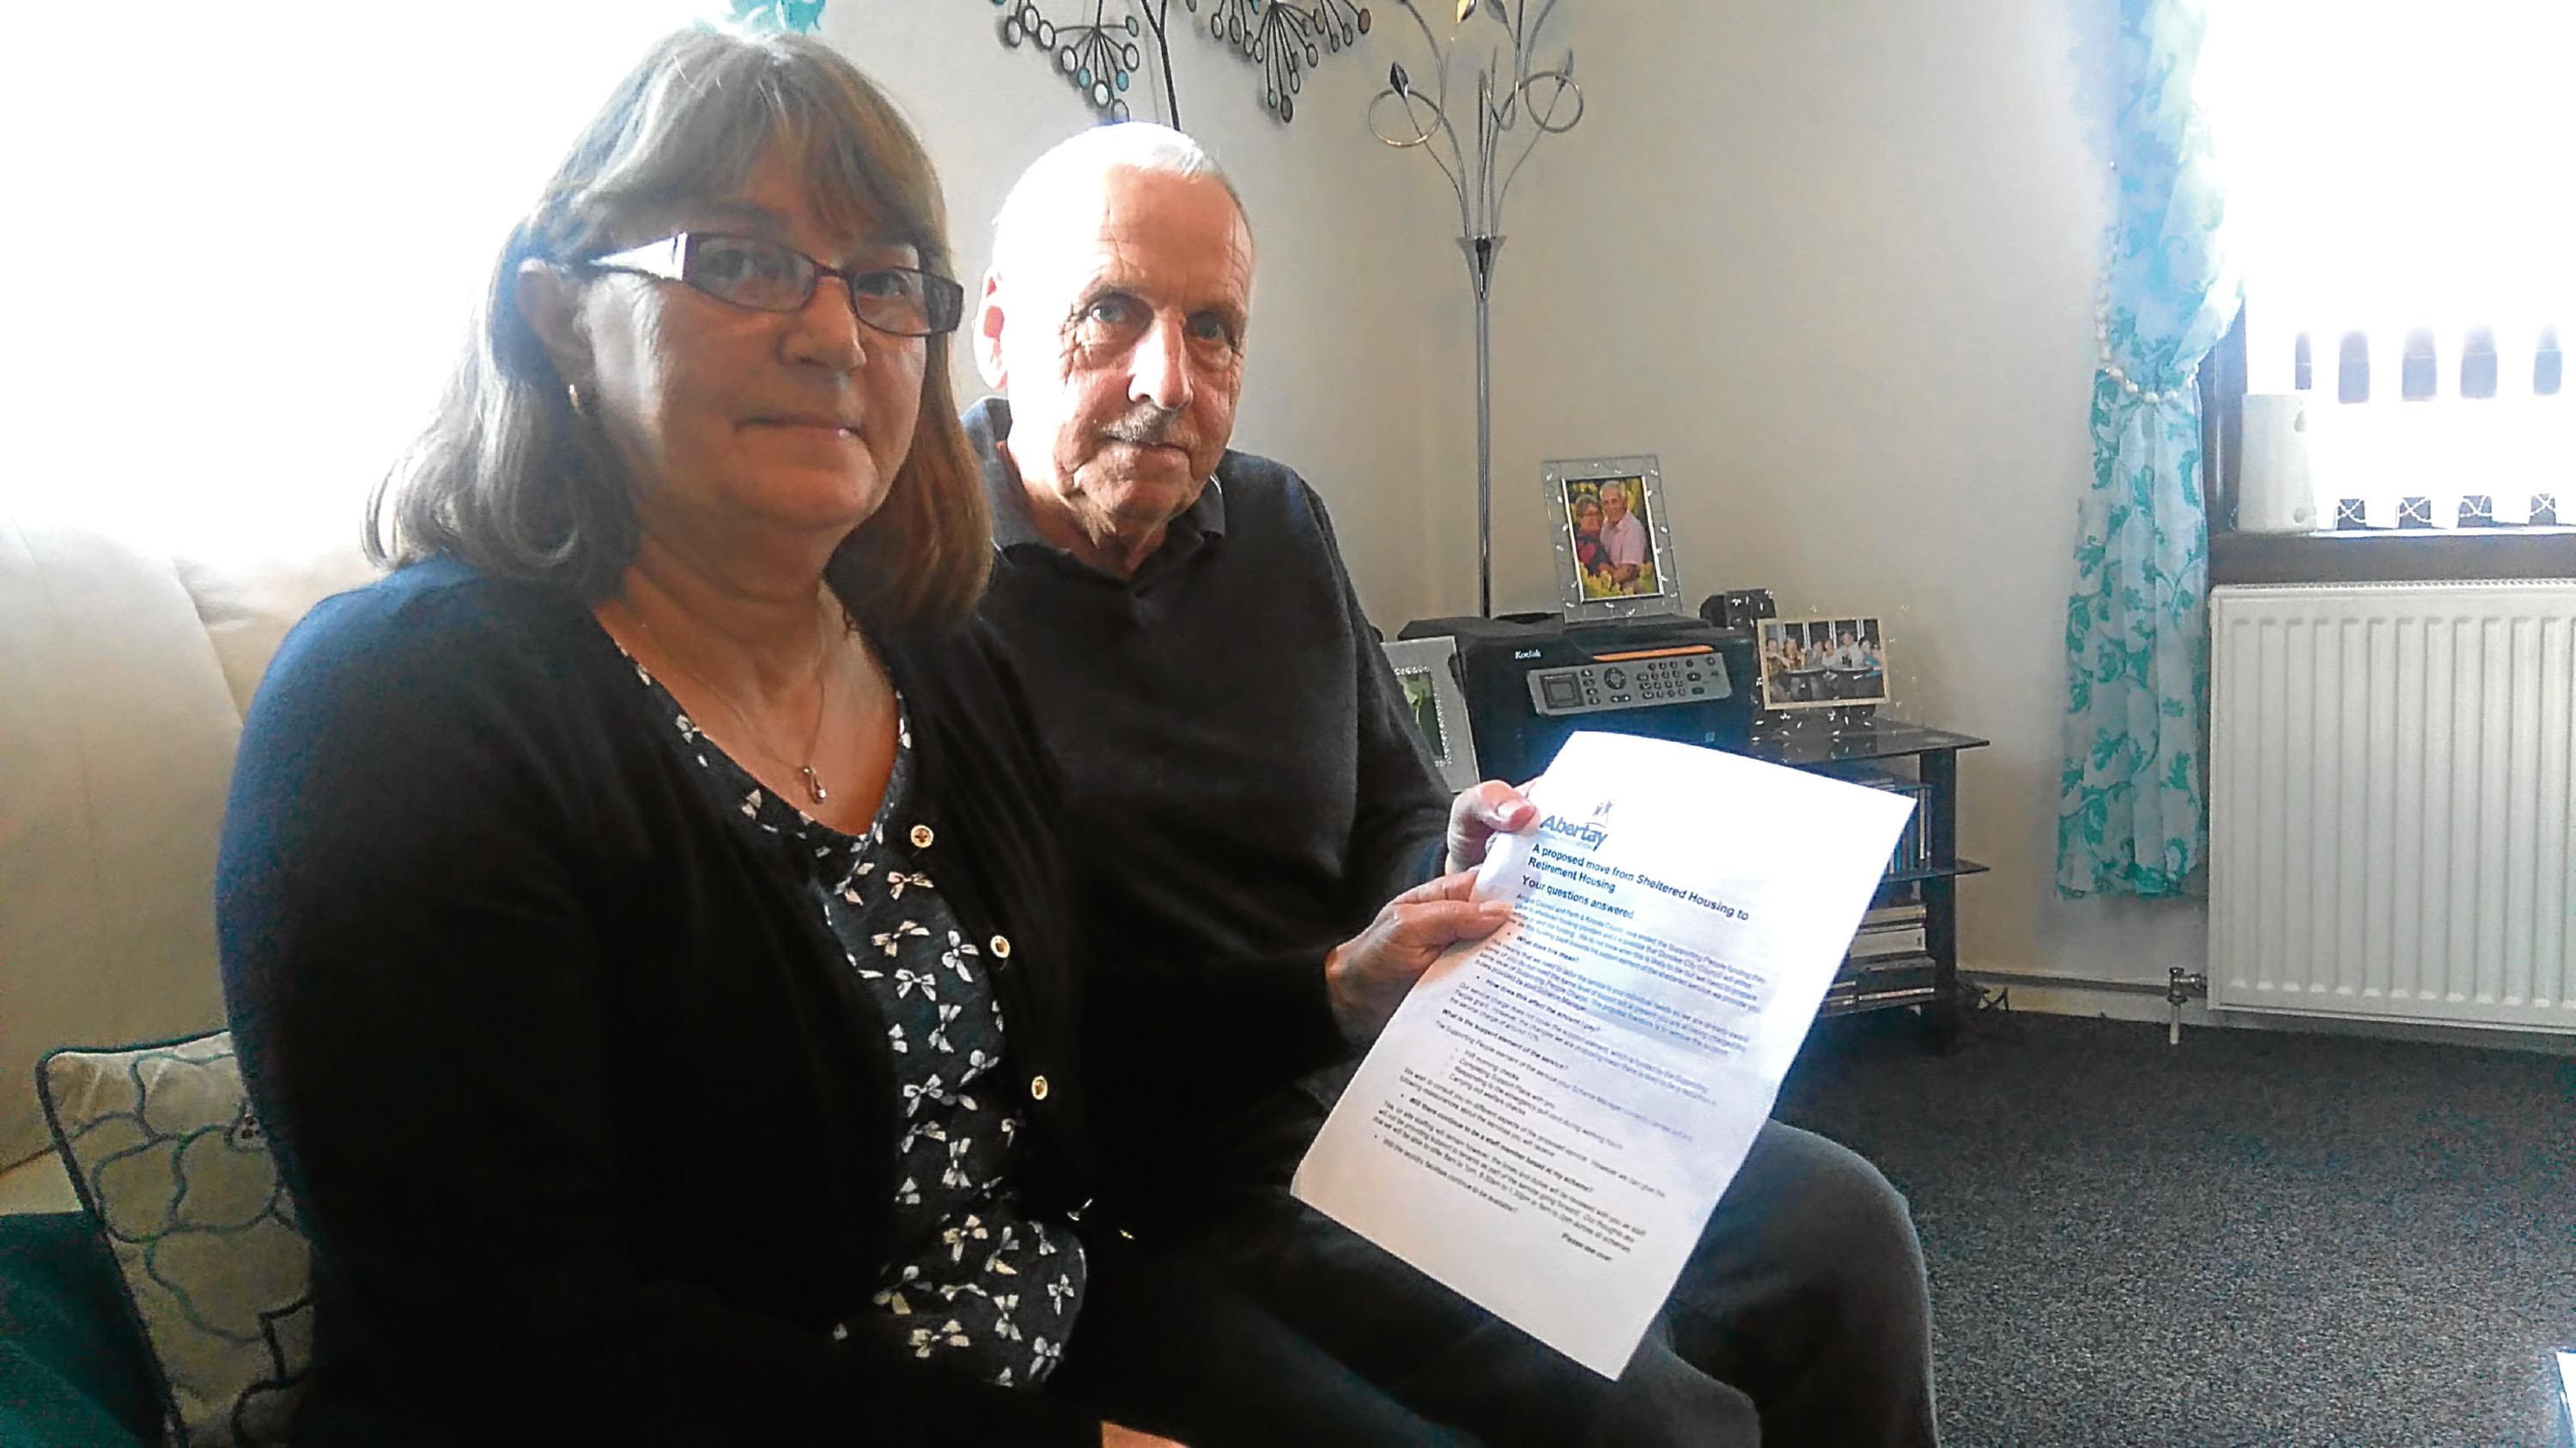 Brian and Katherine Perrie with a copy of the letter from AHA.